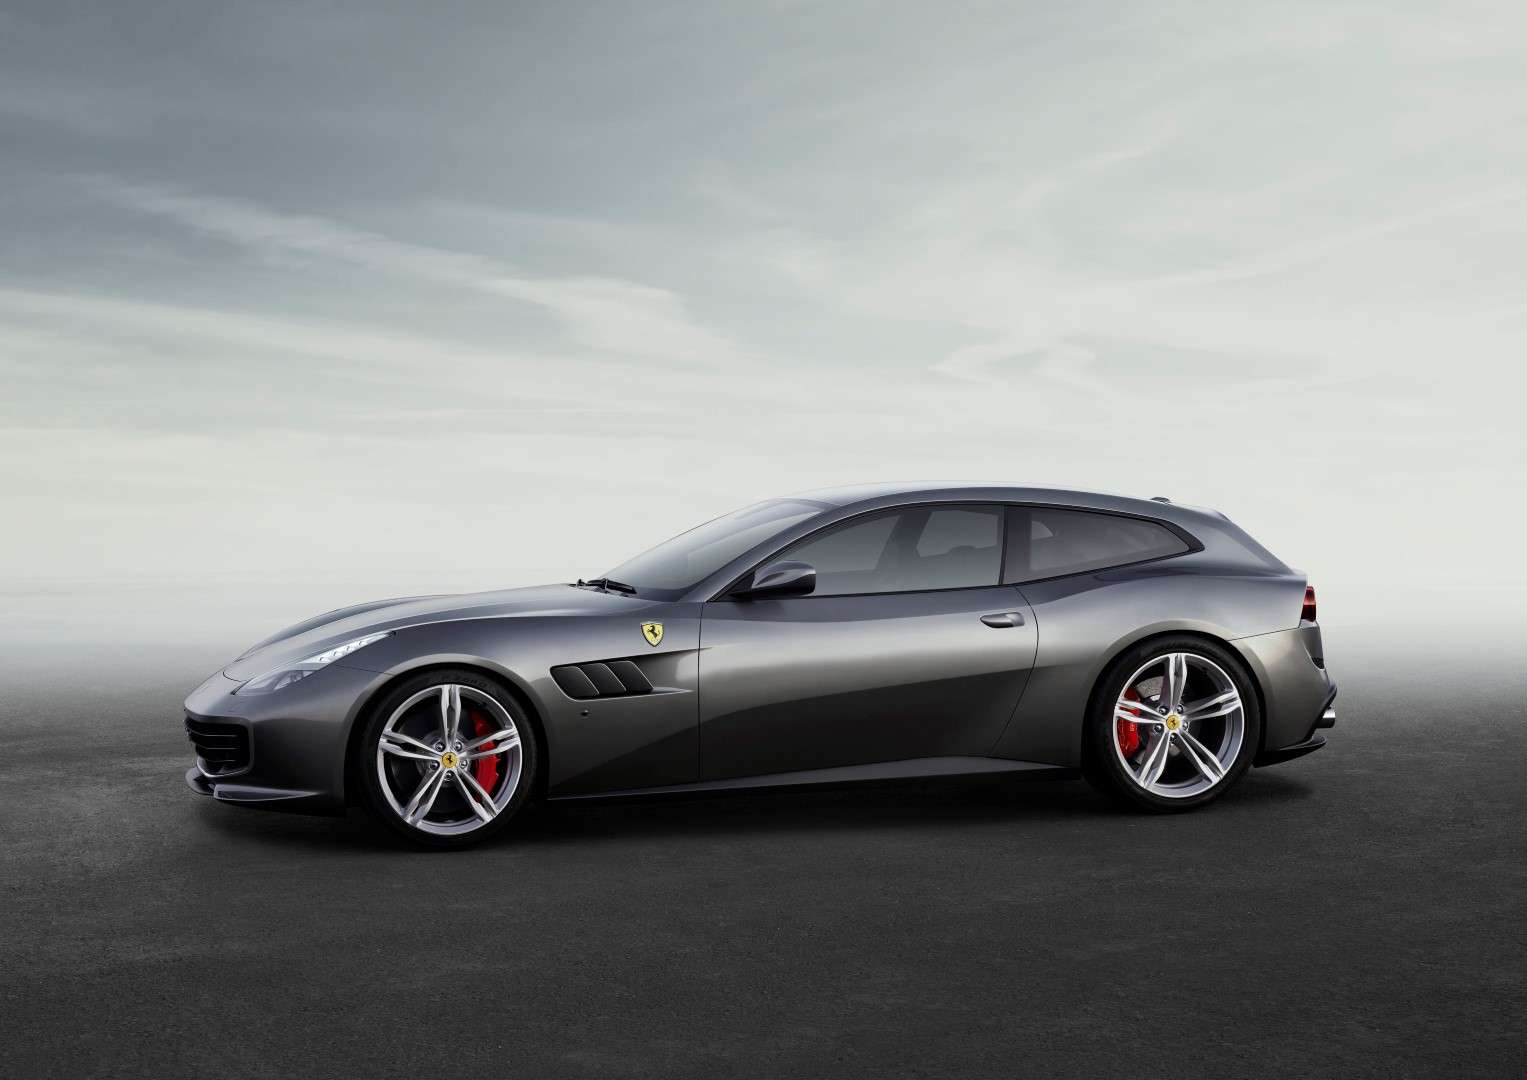 160067-car-Ferrari-GTC4Lusso-side-LR